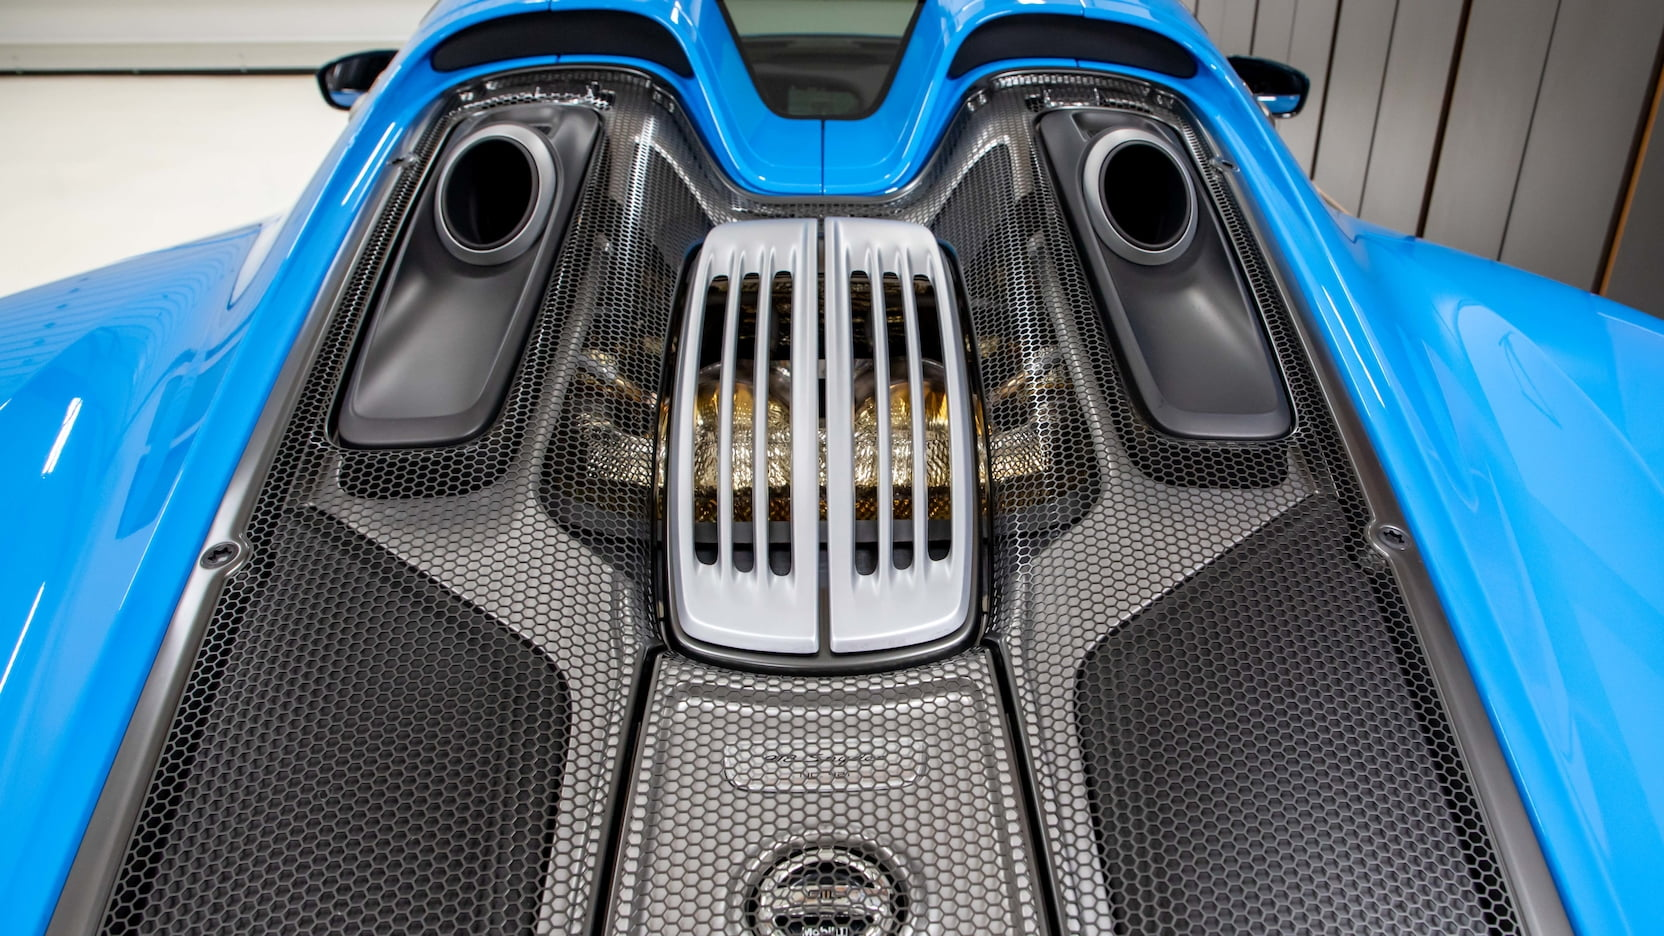 Porsche-918-Spyder-Riviera-Blue-auction-18